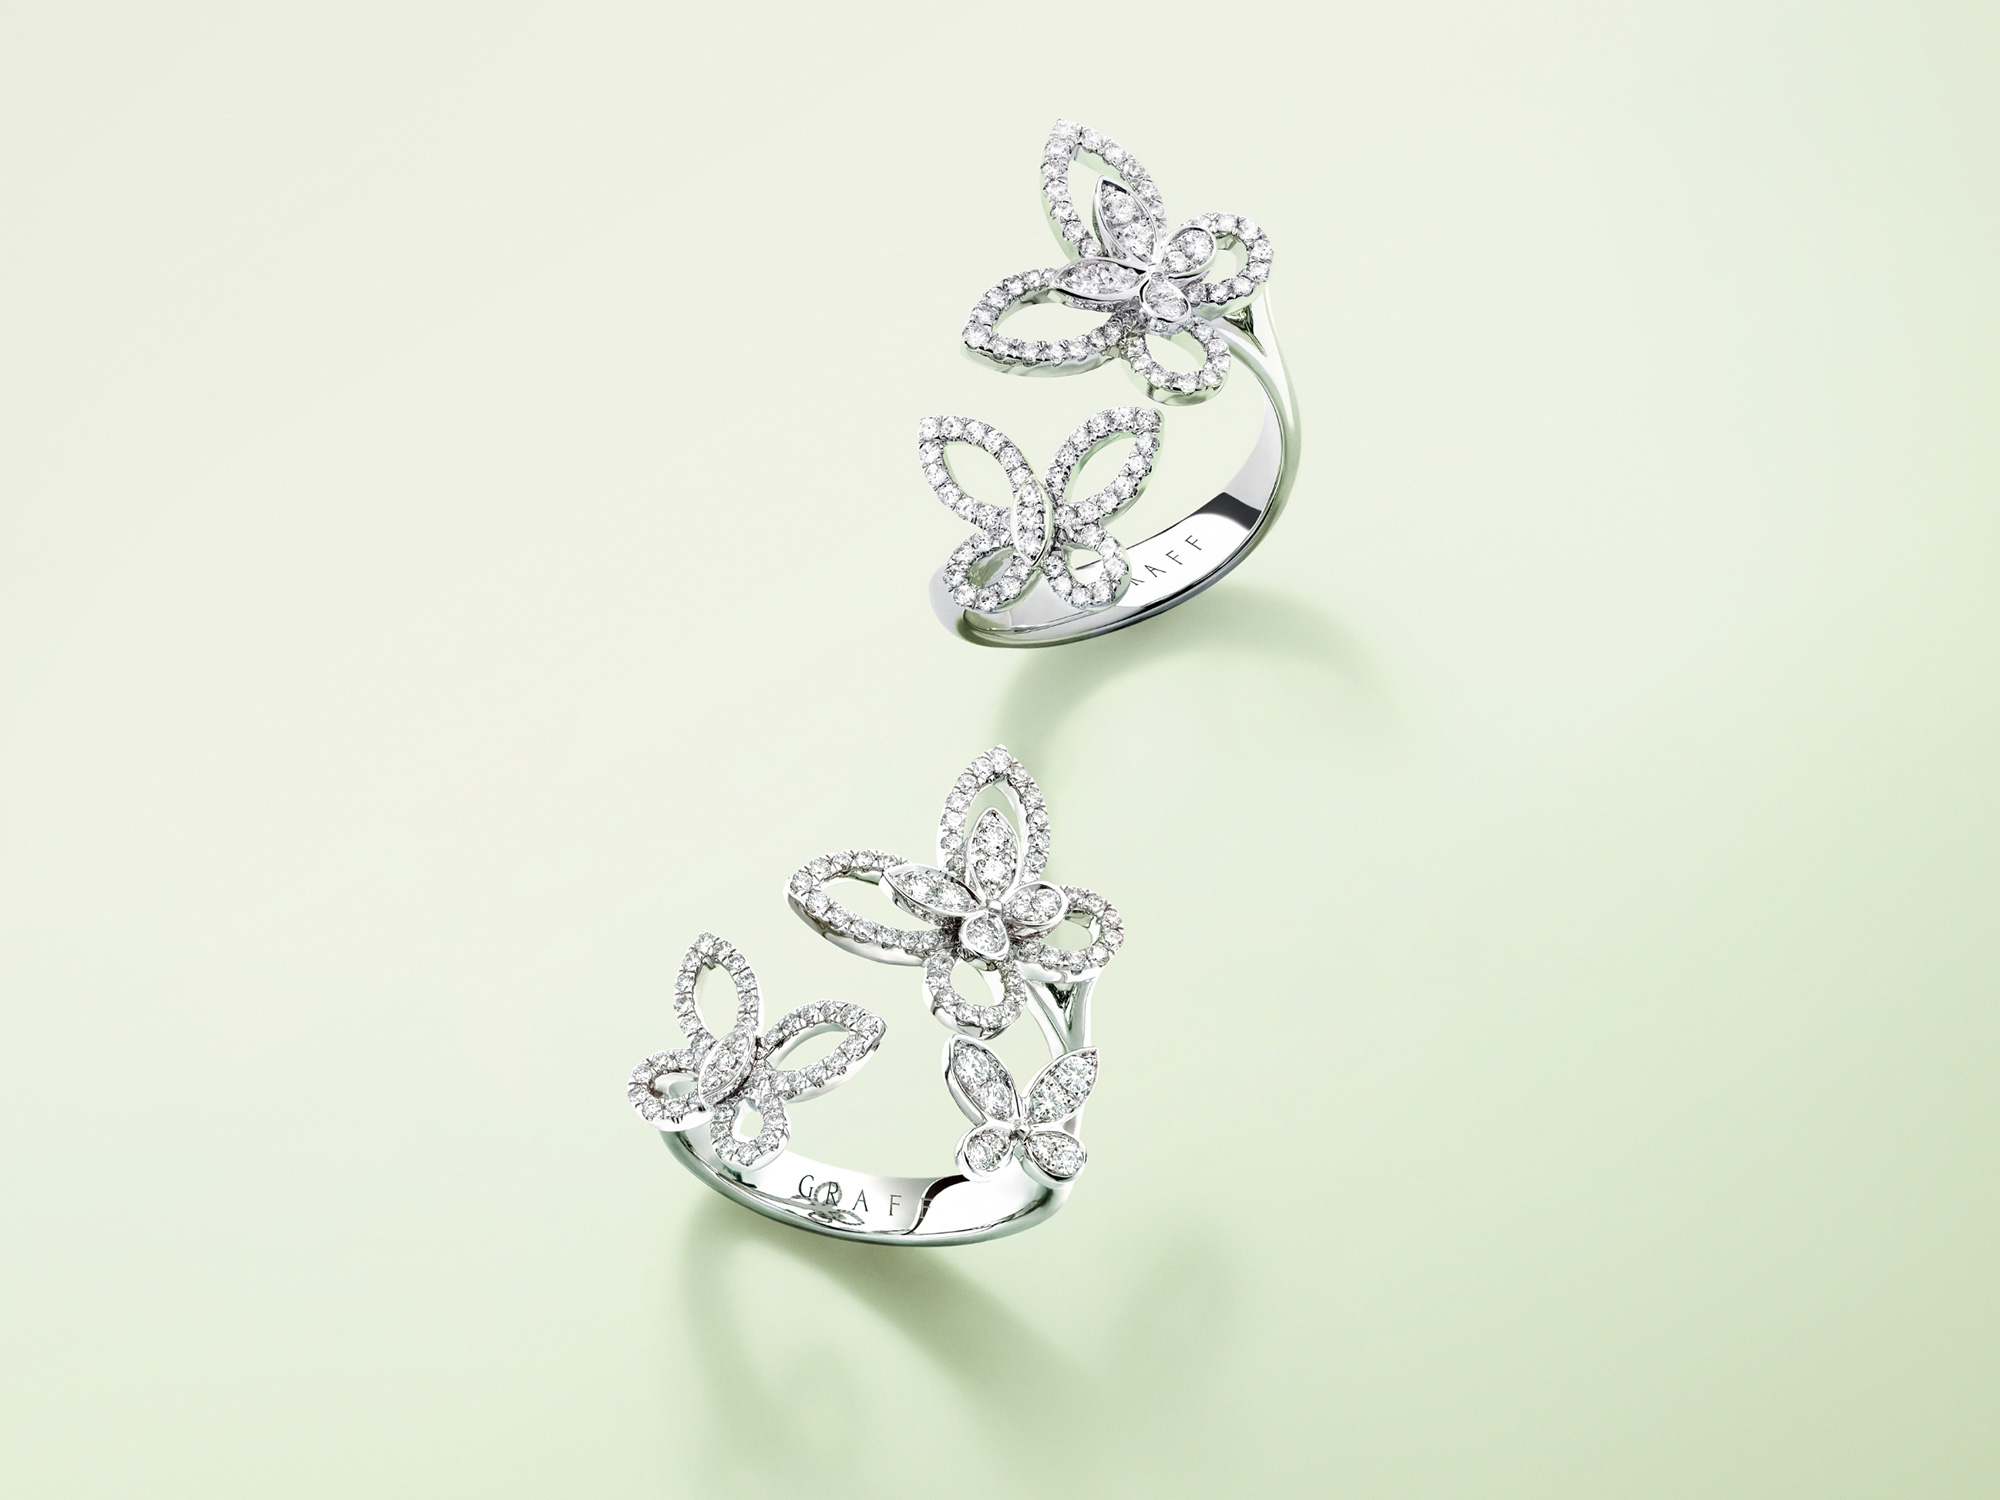 Double Butterfly Silhouette Diamond Ring and Triple Butterfly Silhouette Diamond Ring from the Graff jewellery collection.